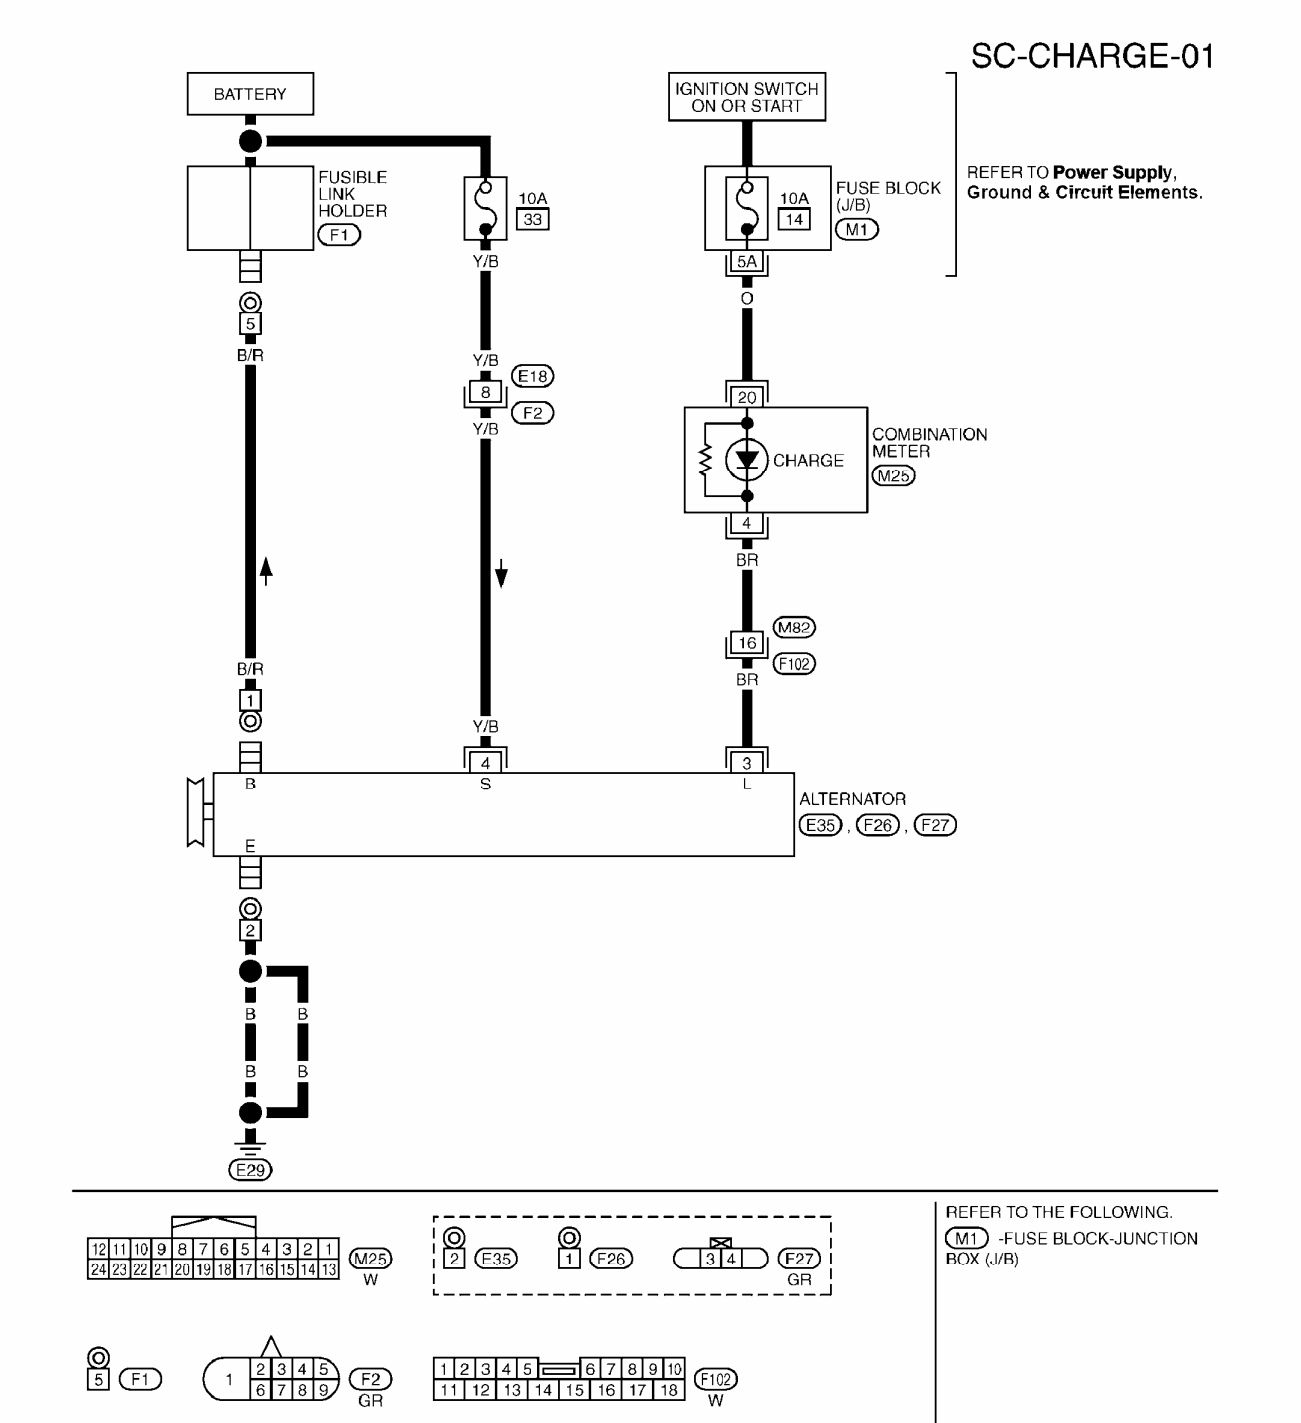 John Deere Starter Relay Wiring Diagram Manual Of X300 Harness Solenoid 09 Morano Has A Alternator Connector With 3 Pins 5 4